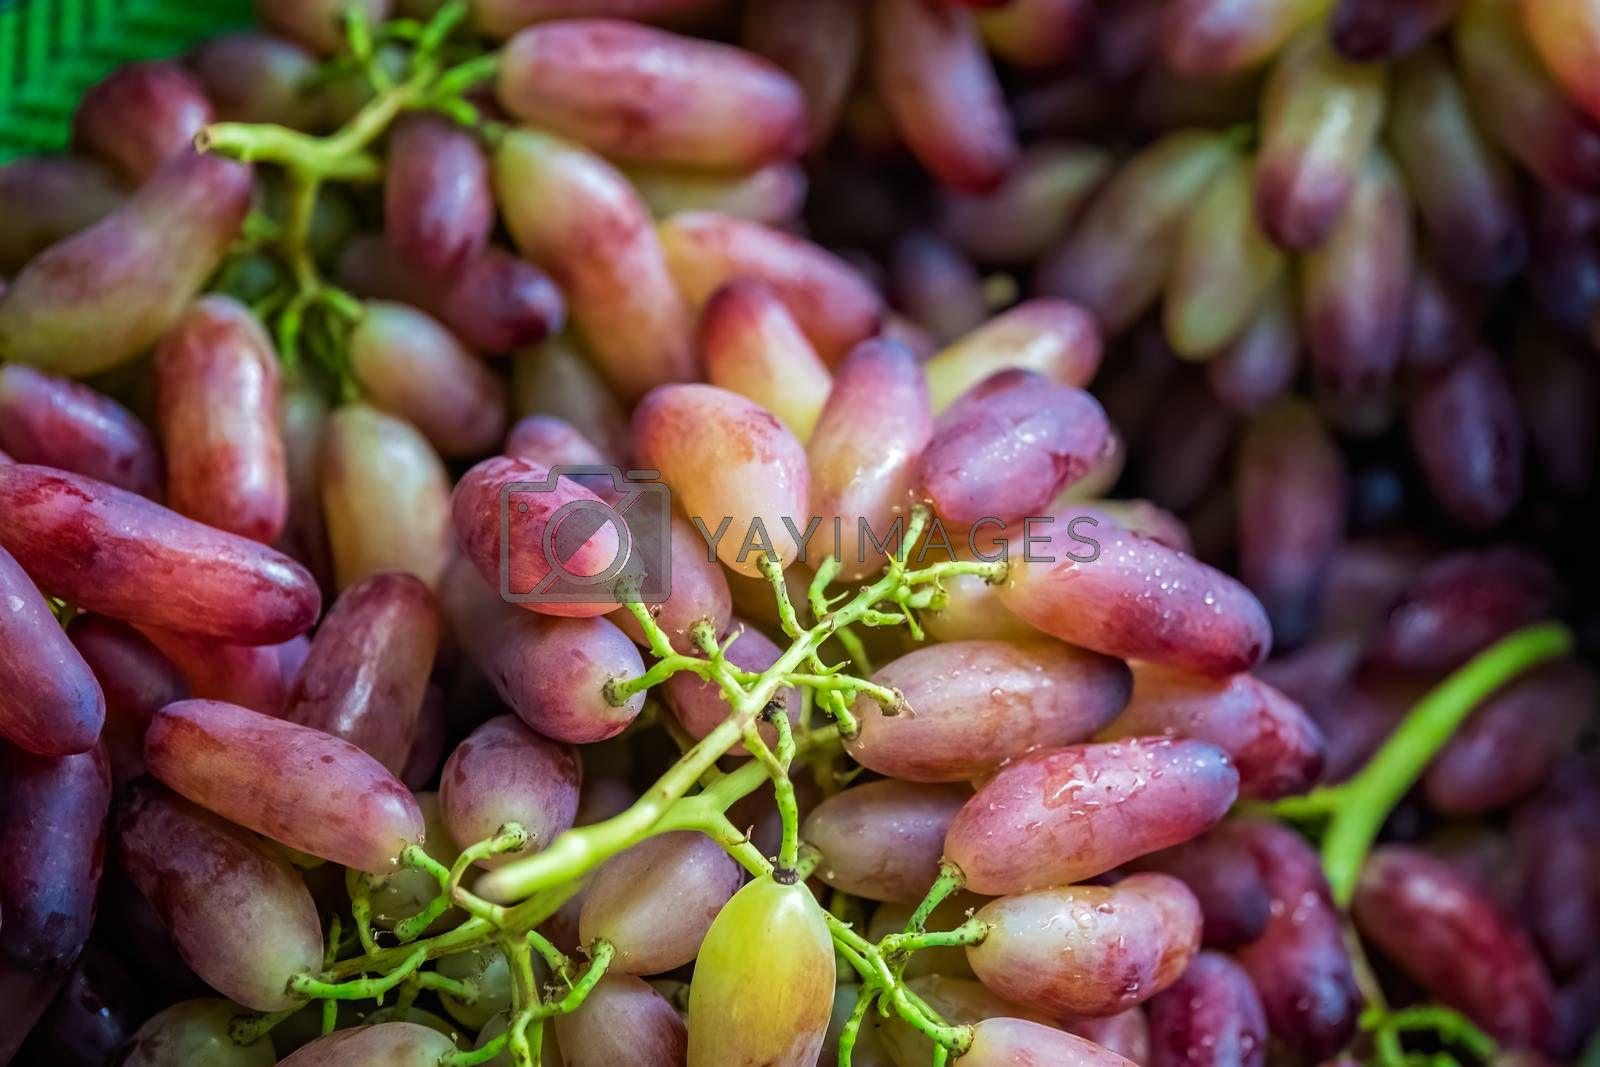 Delicious red grapes on sale on market by pawopa3336